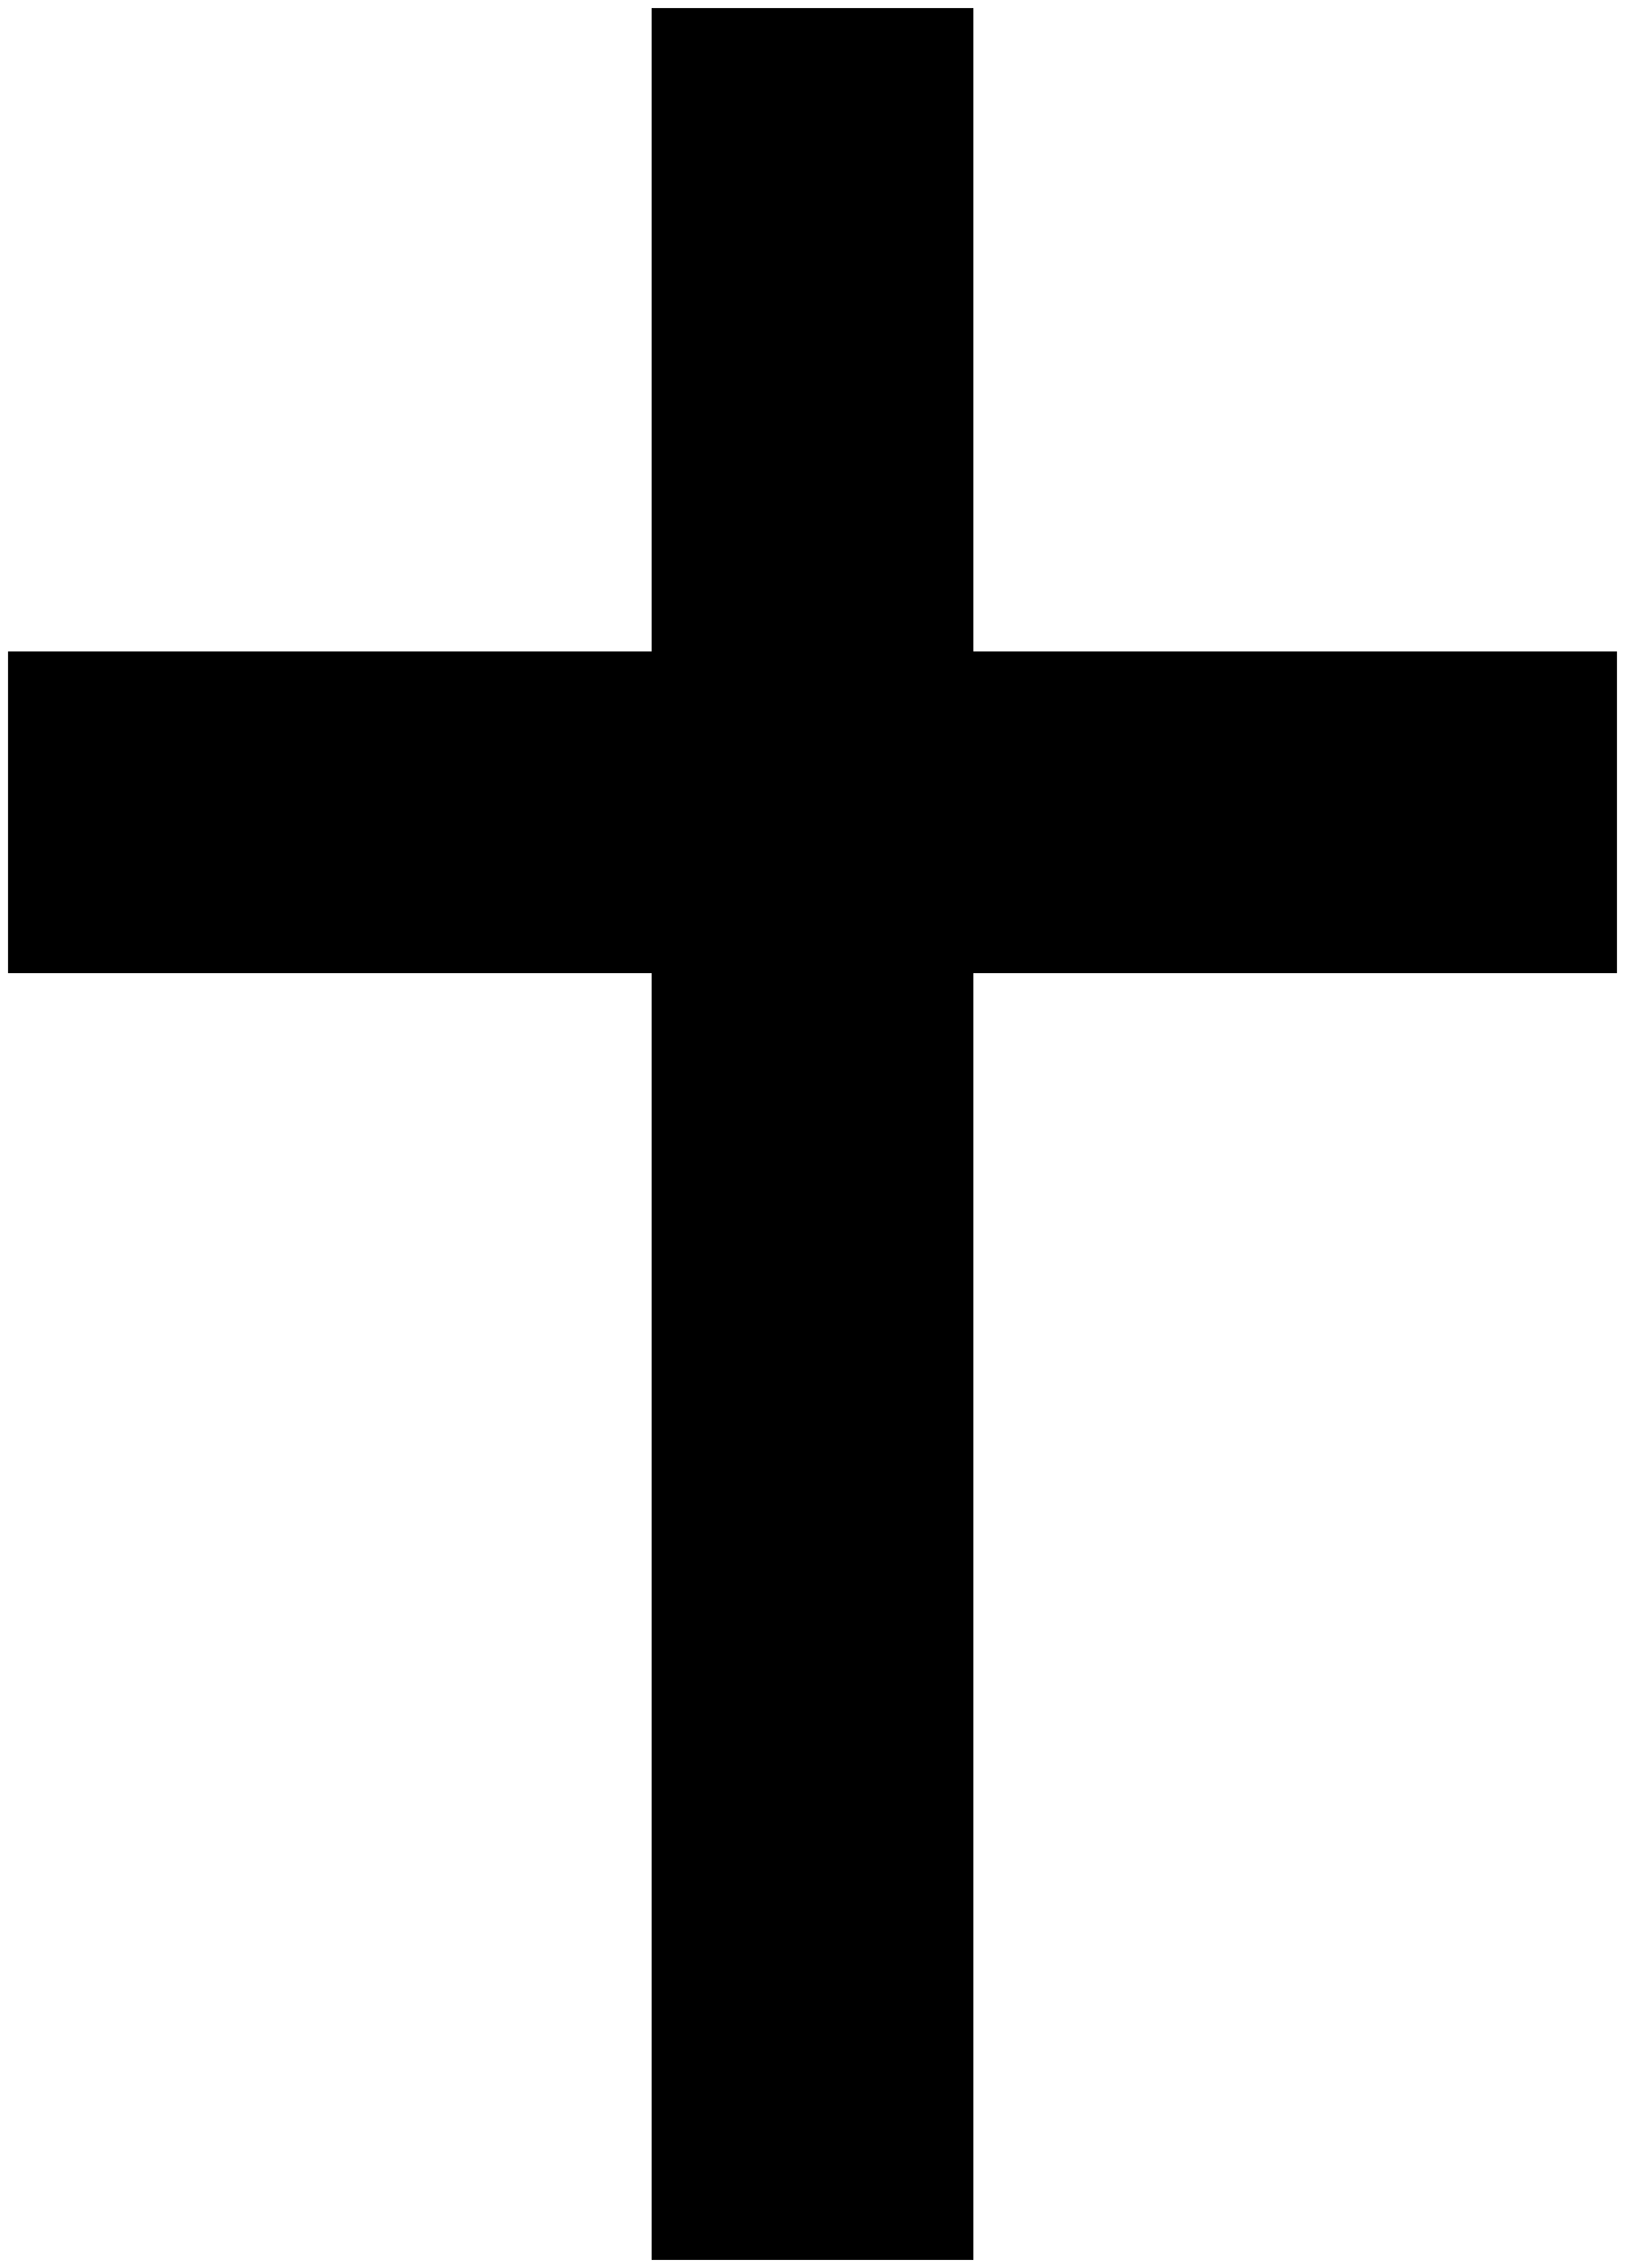 Cross of christ clipart clip art library download Simple Christian Cross Clipart transparent PNG - StickPNG clip art library download